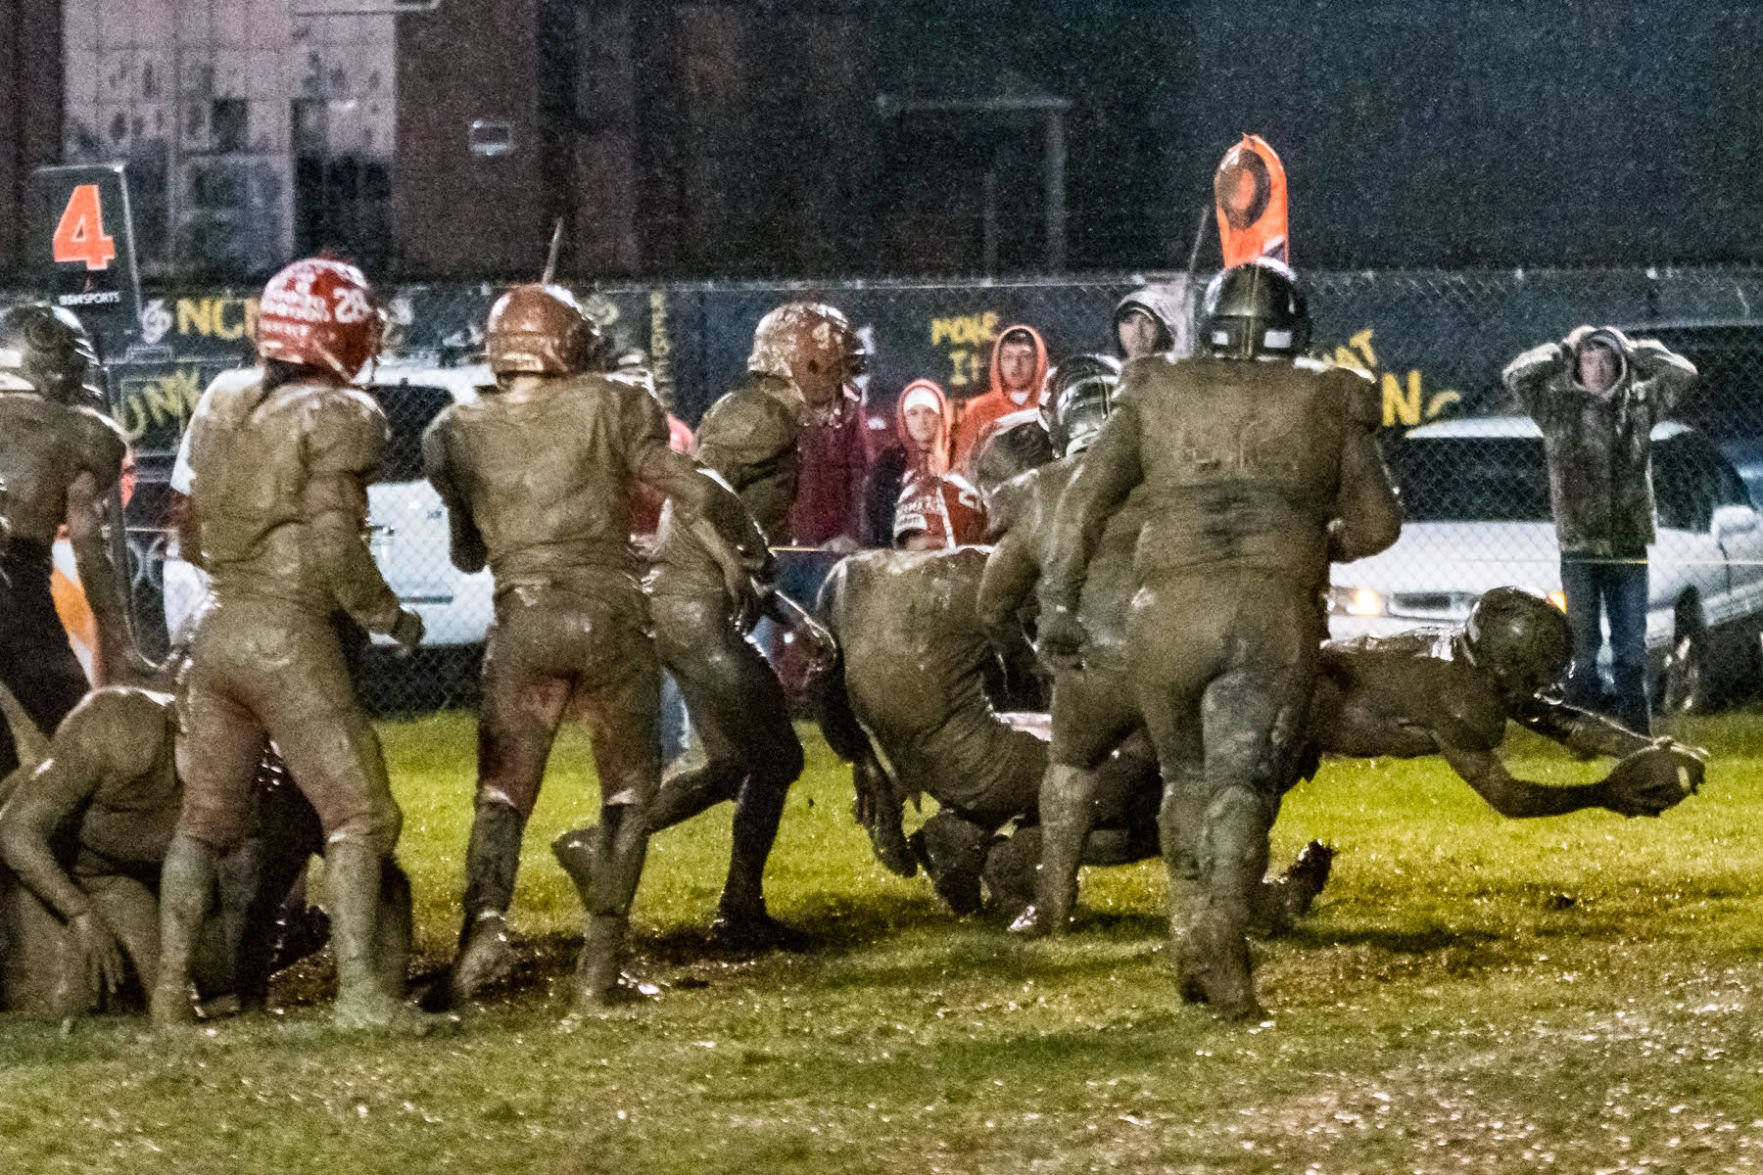 Getting moist muddy in my football uniform